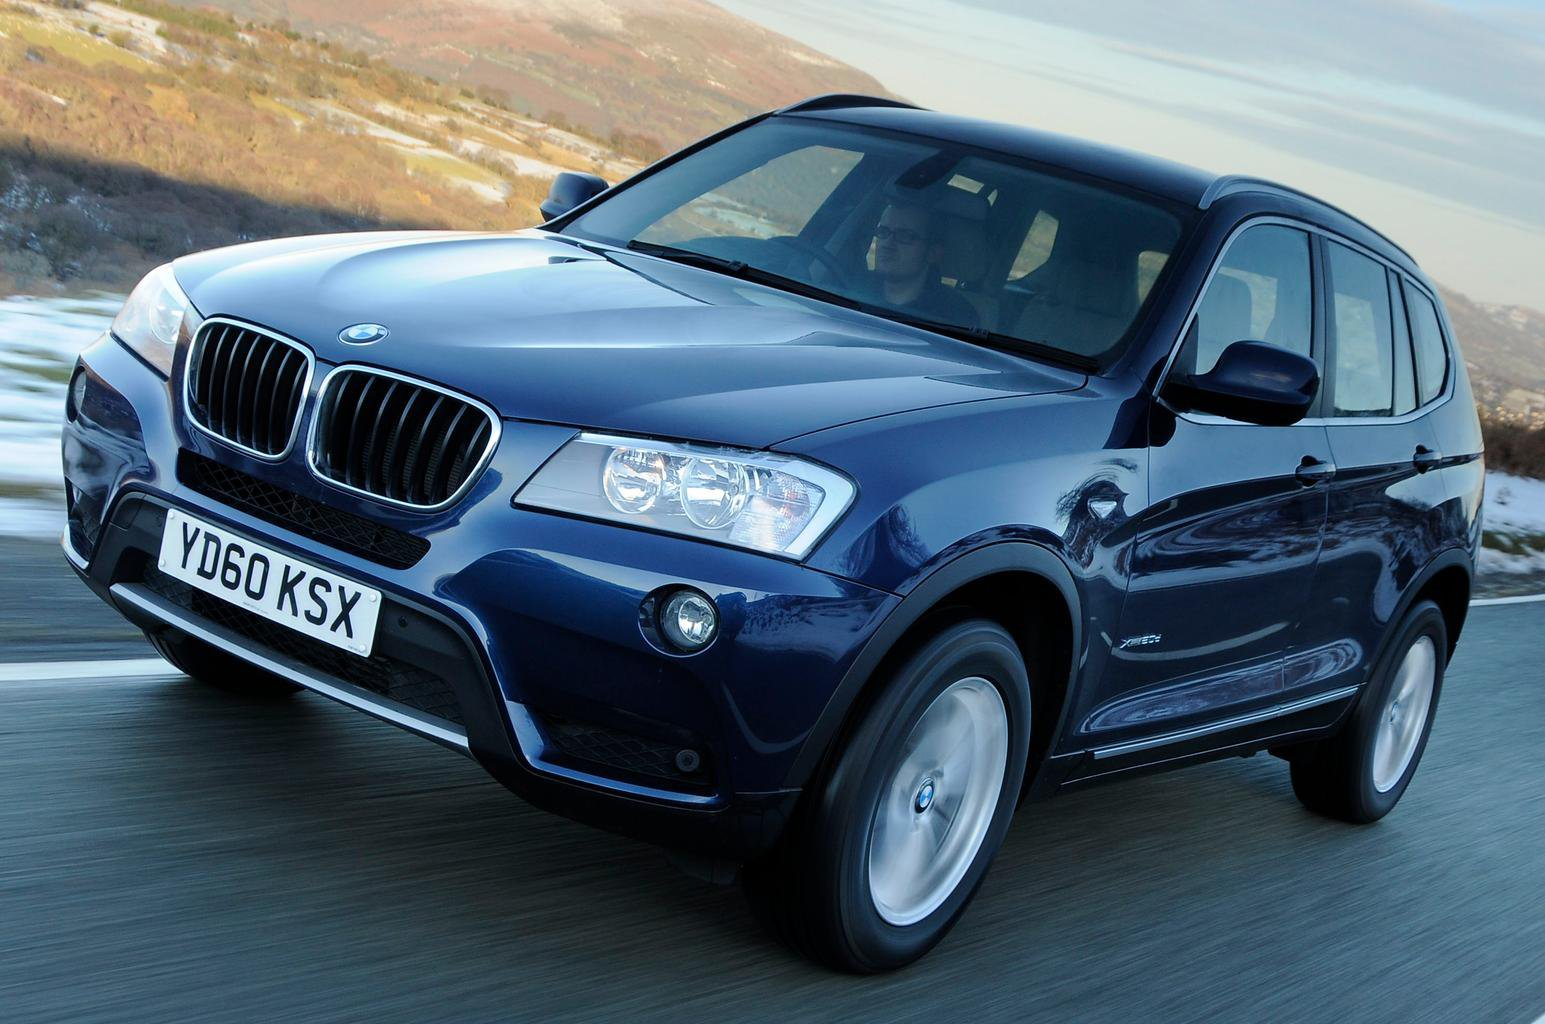 Top 10 used SUVs for less than £25,000